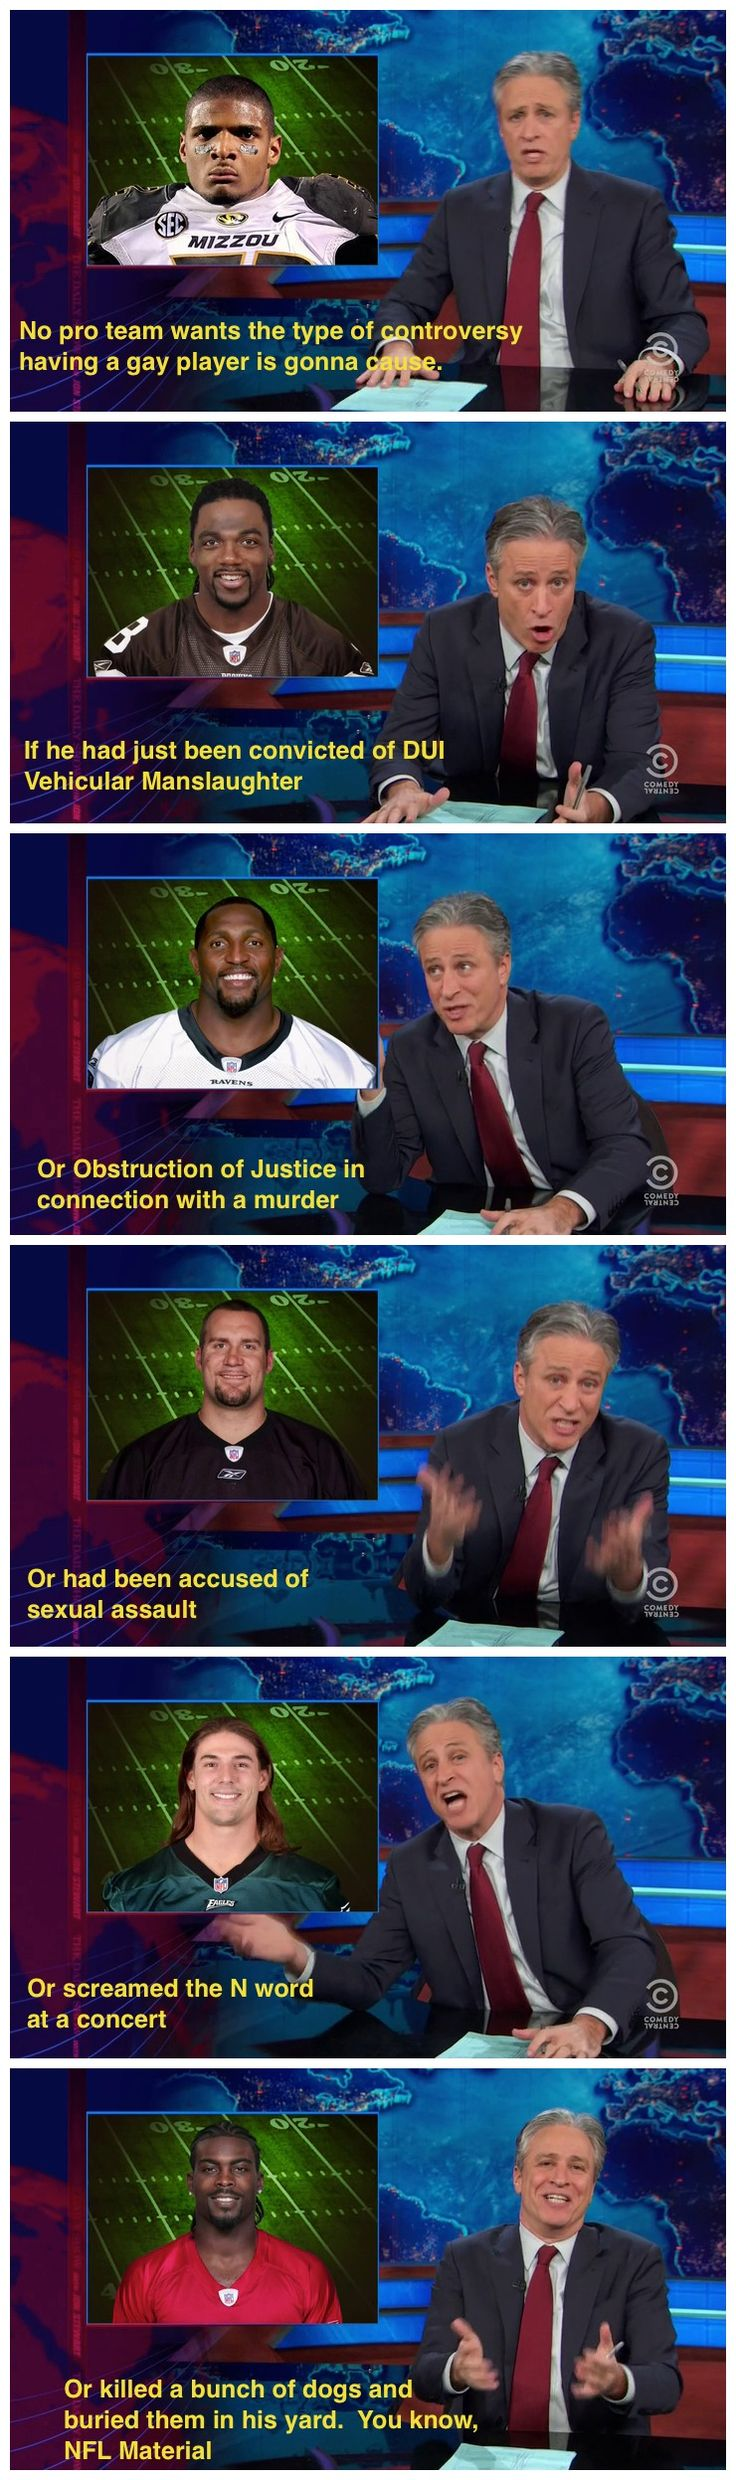 Jon Stewart on the brewing Michael Sam controversy - Imgur is all this true????????????